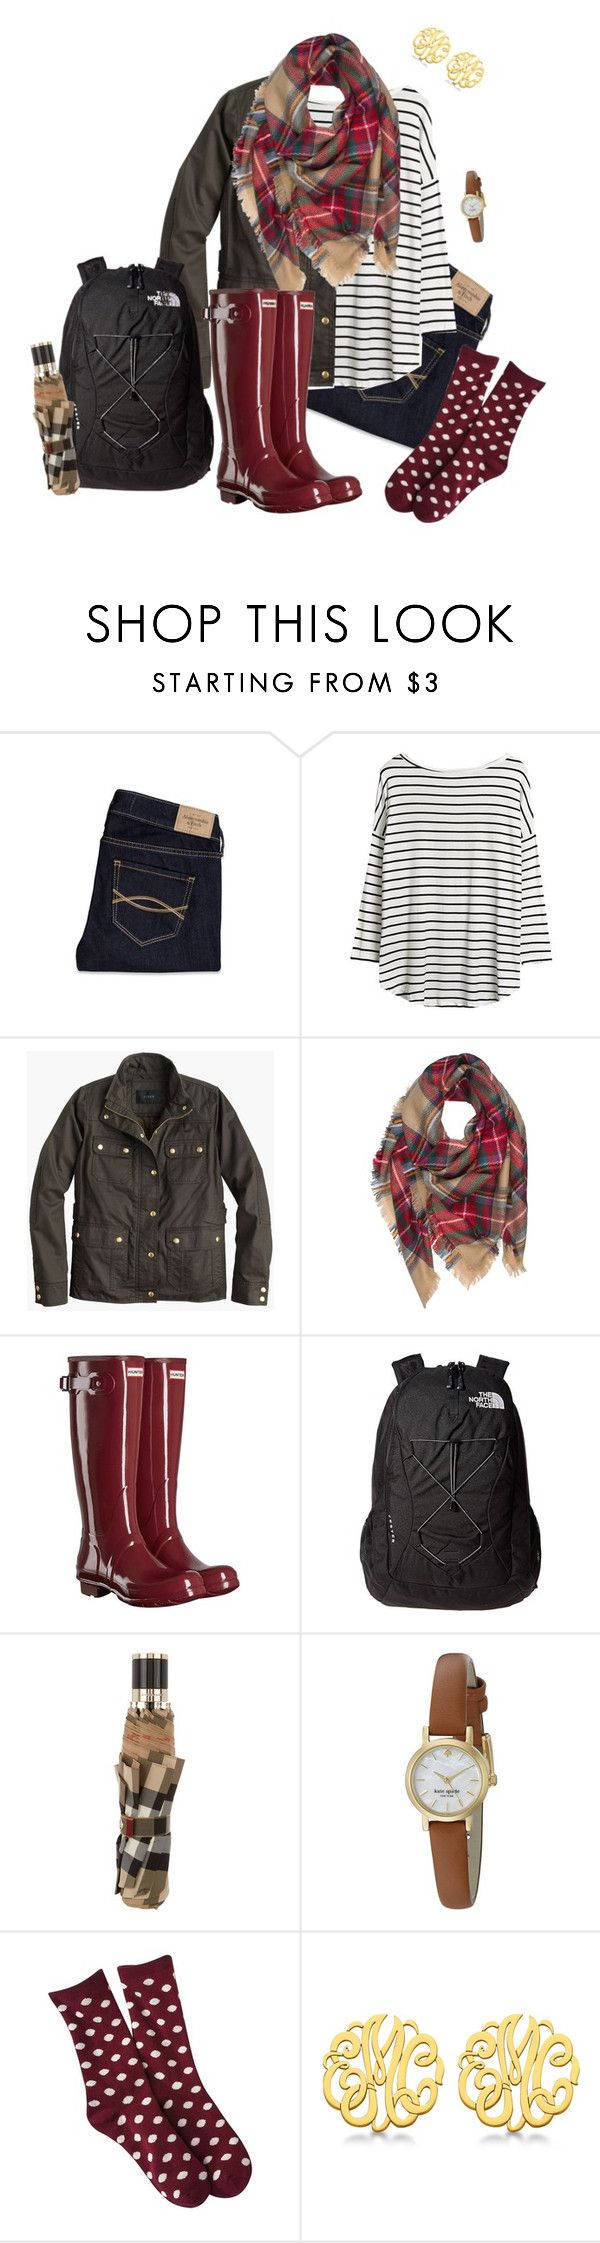 """""""save it for a rainy day"""" by southrnblle ❤ liked on Polyvore featuring Abercrombie & Fitch, J.Crew, Hunter, The North Face, Burberry, Kate Spade, Merona and Allurez"""